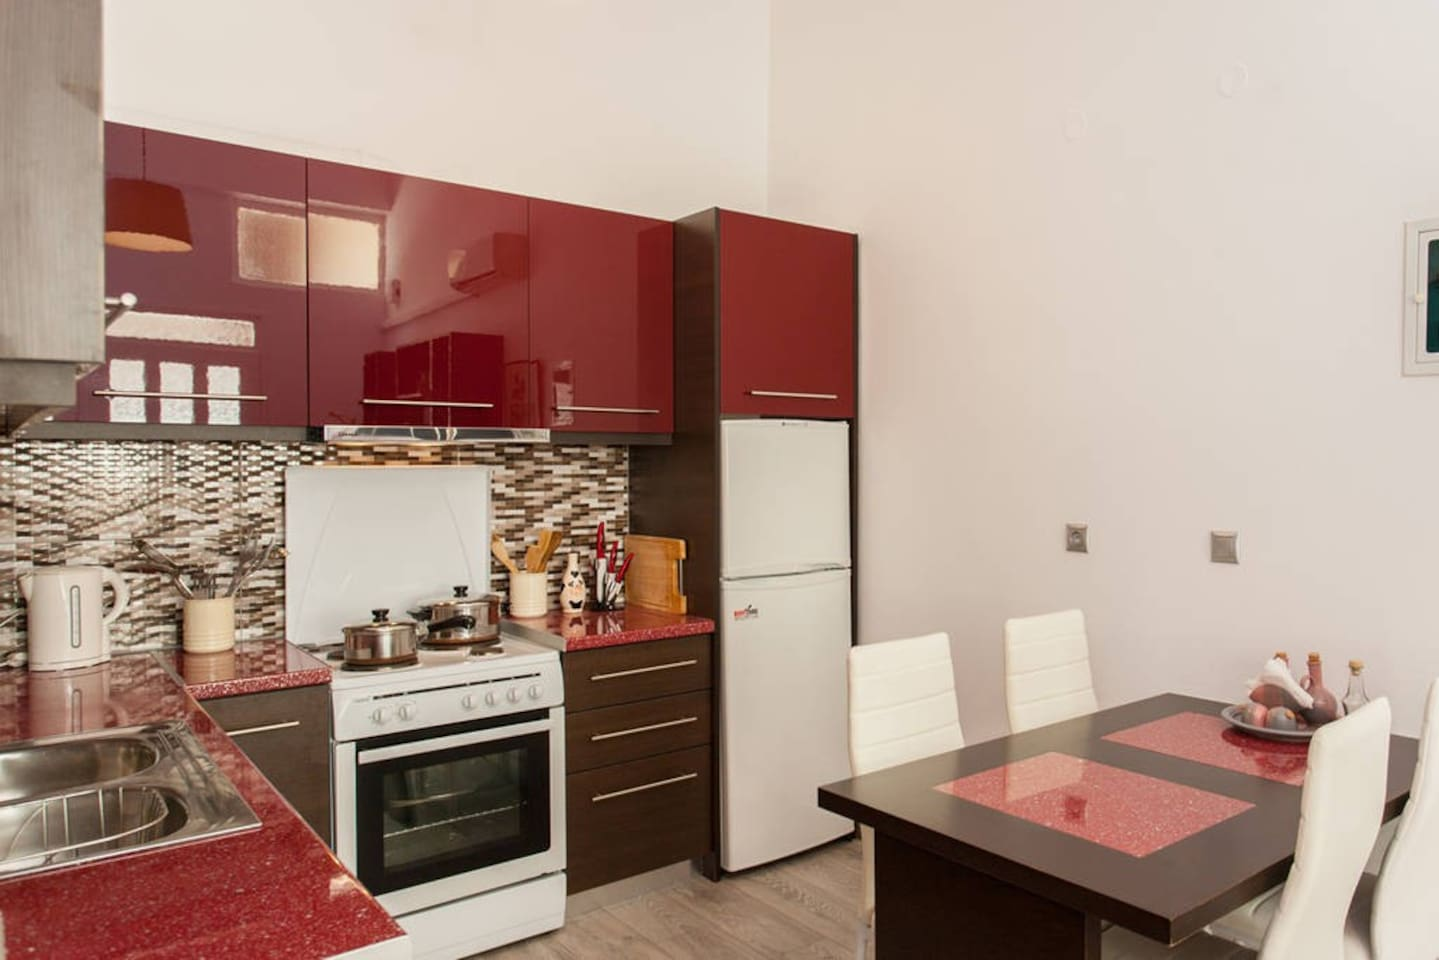 kitchen with fridge, stove and dining area